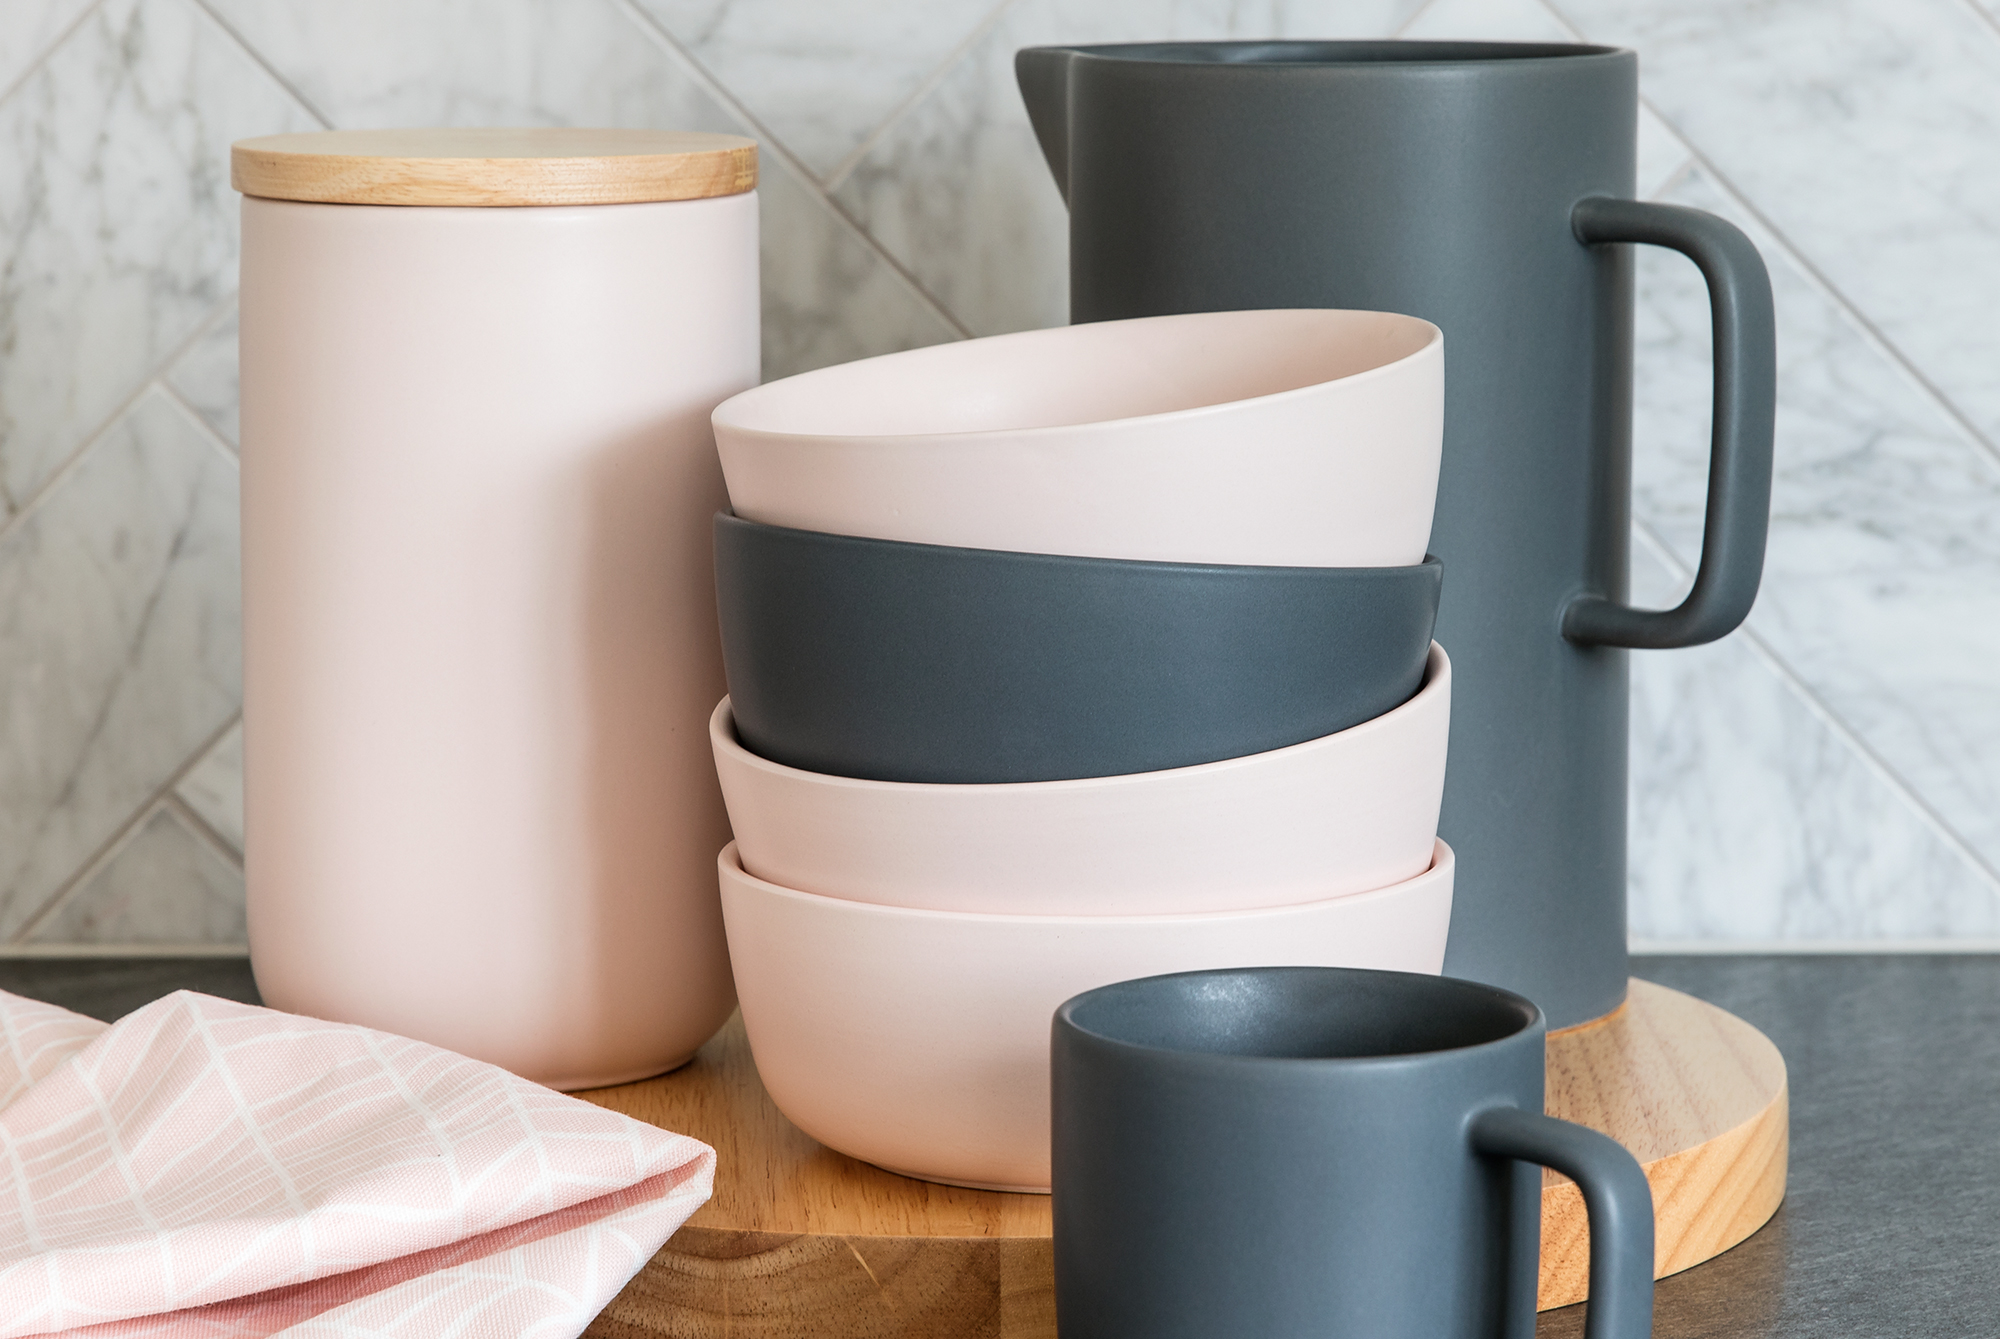 Add a touch of Scandinavia to your home with these stoneware bowls, both modern and functional they would be a great addition to any home. One interior trend for the year